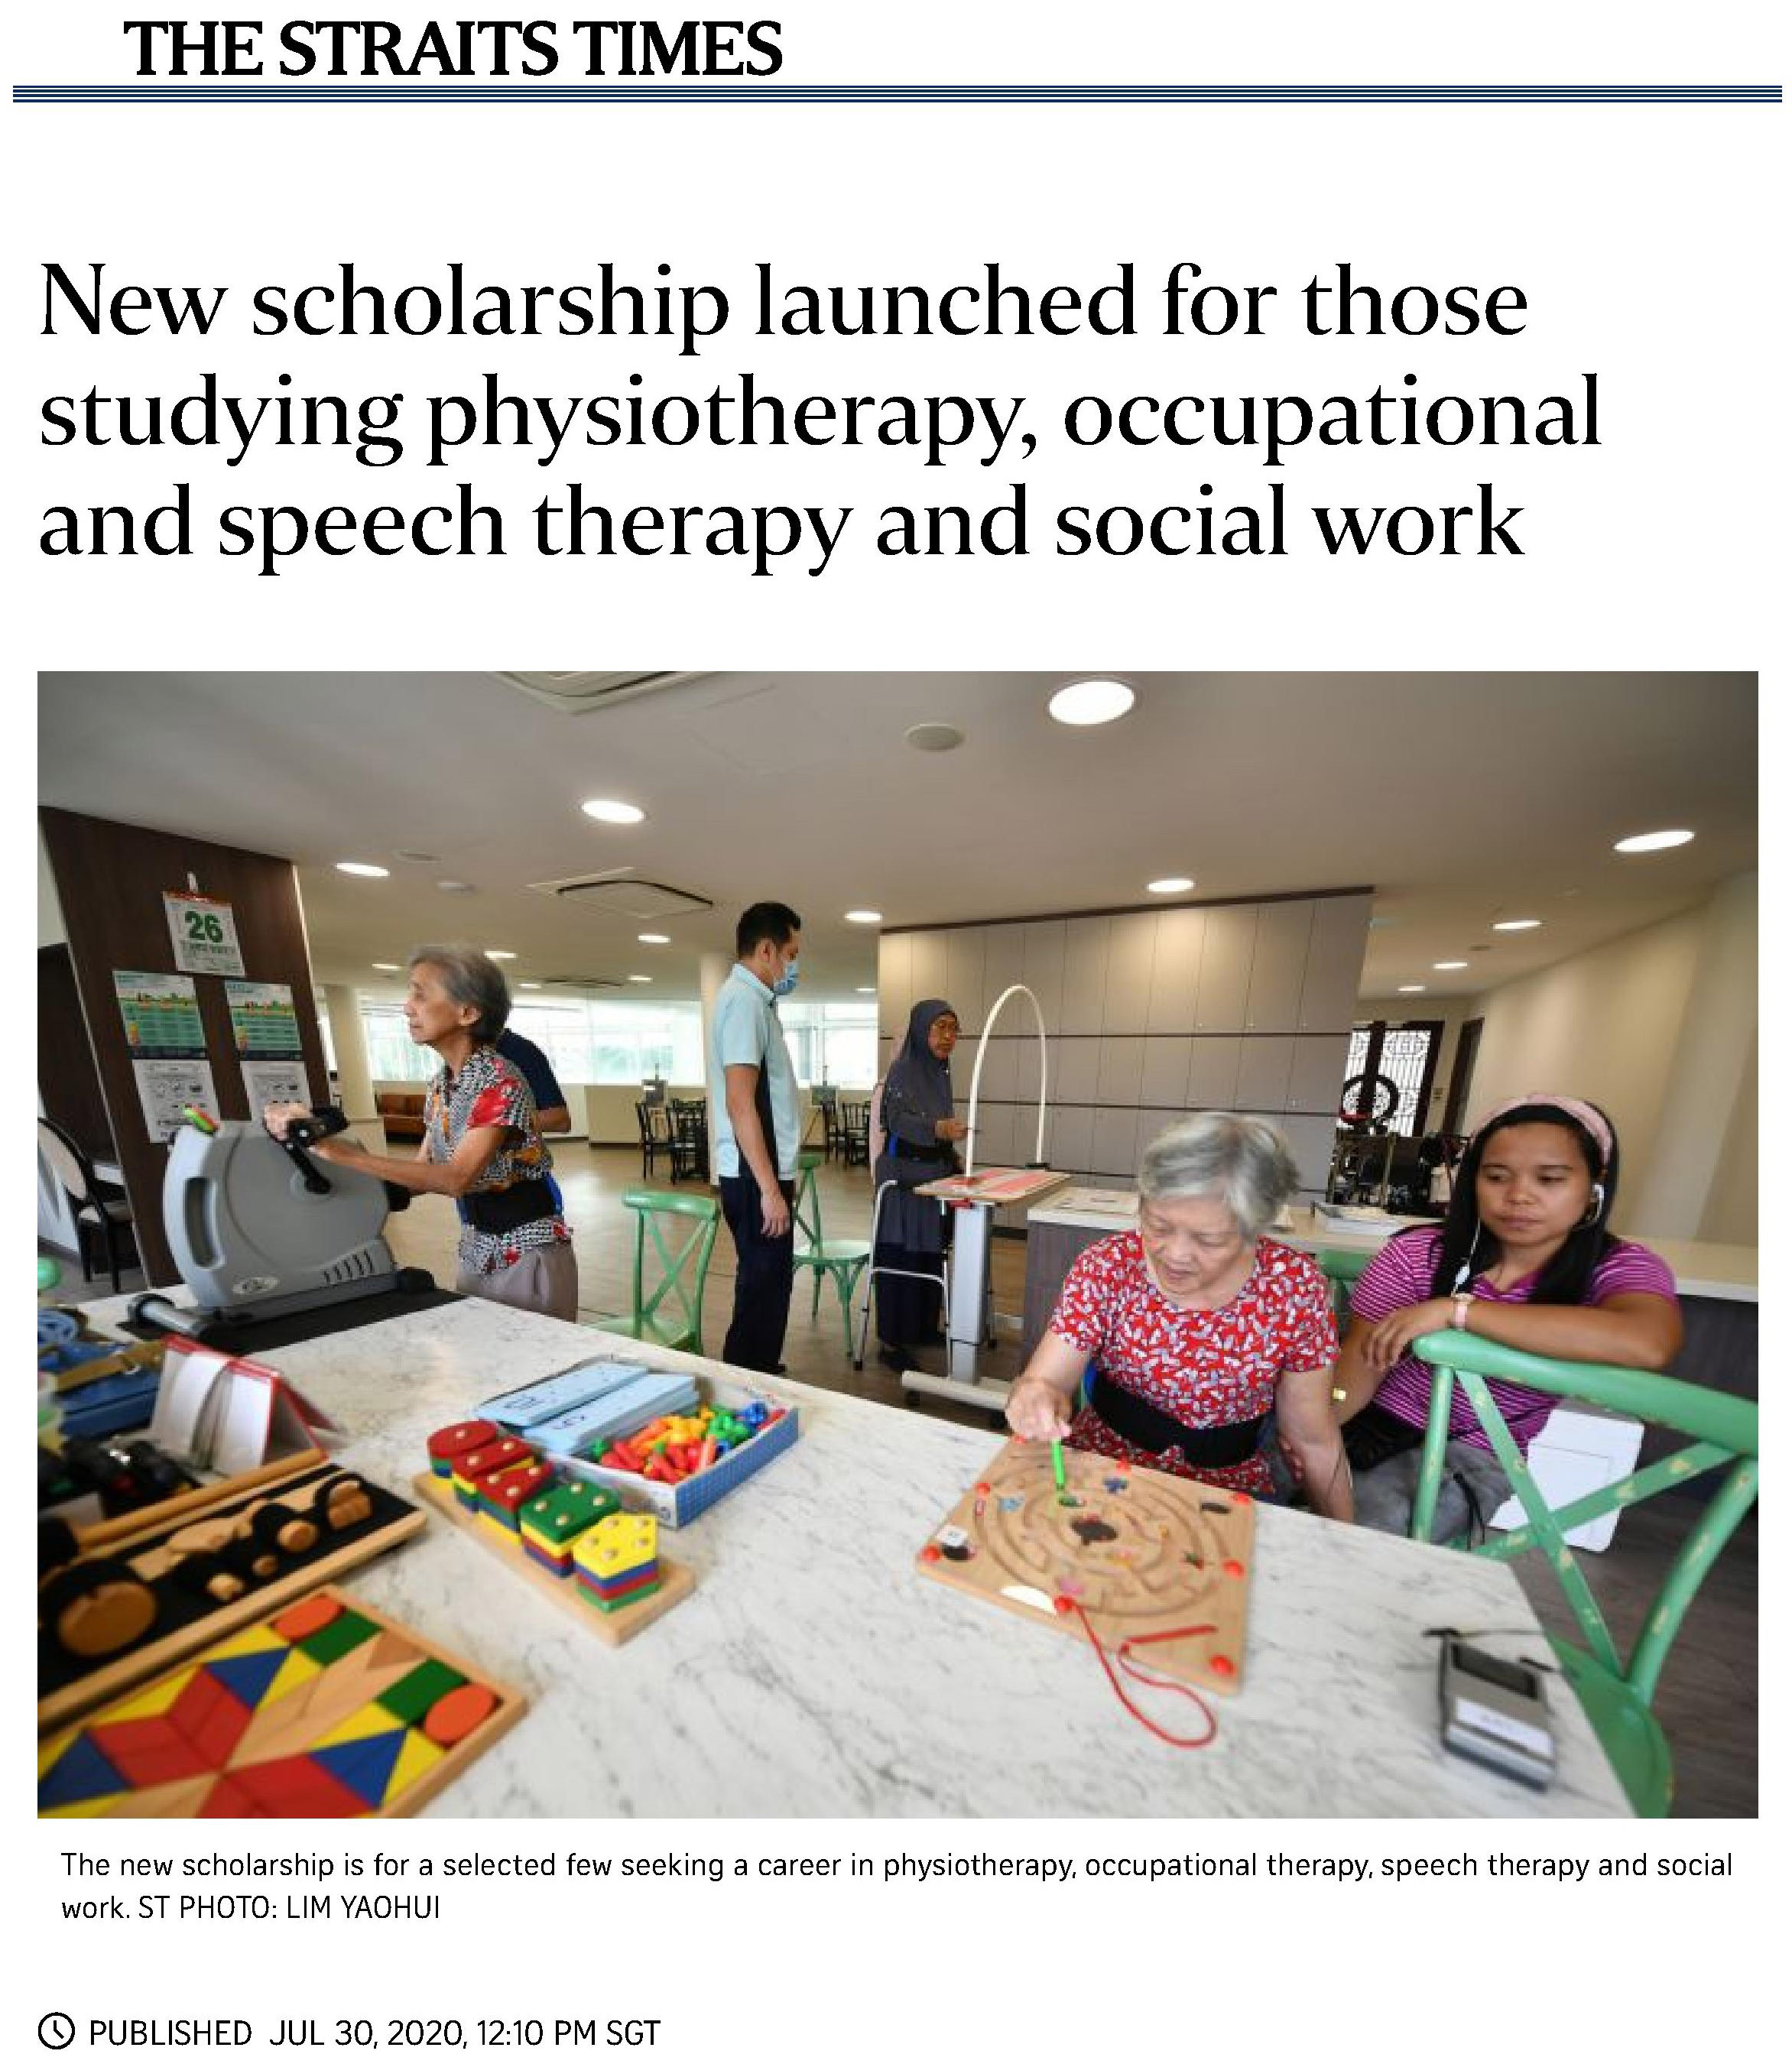 New scholarship launched for those studying physiotherapy, occupational and speech therapy and social work_1.jpg